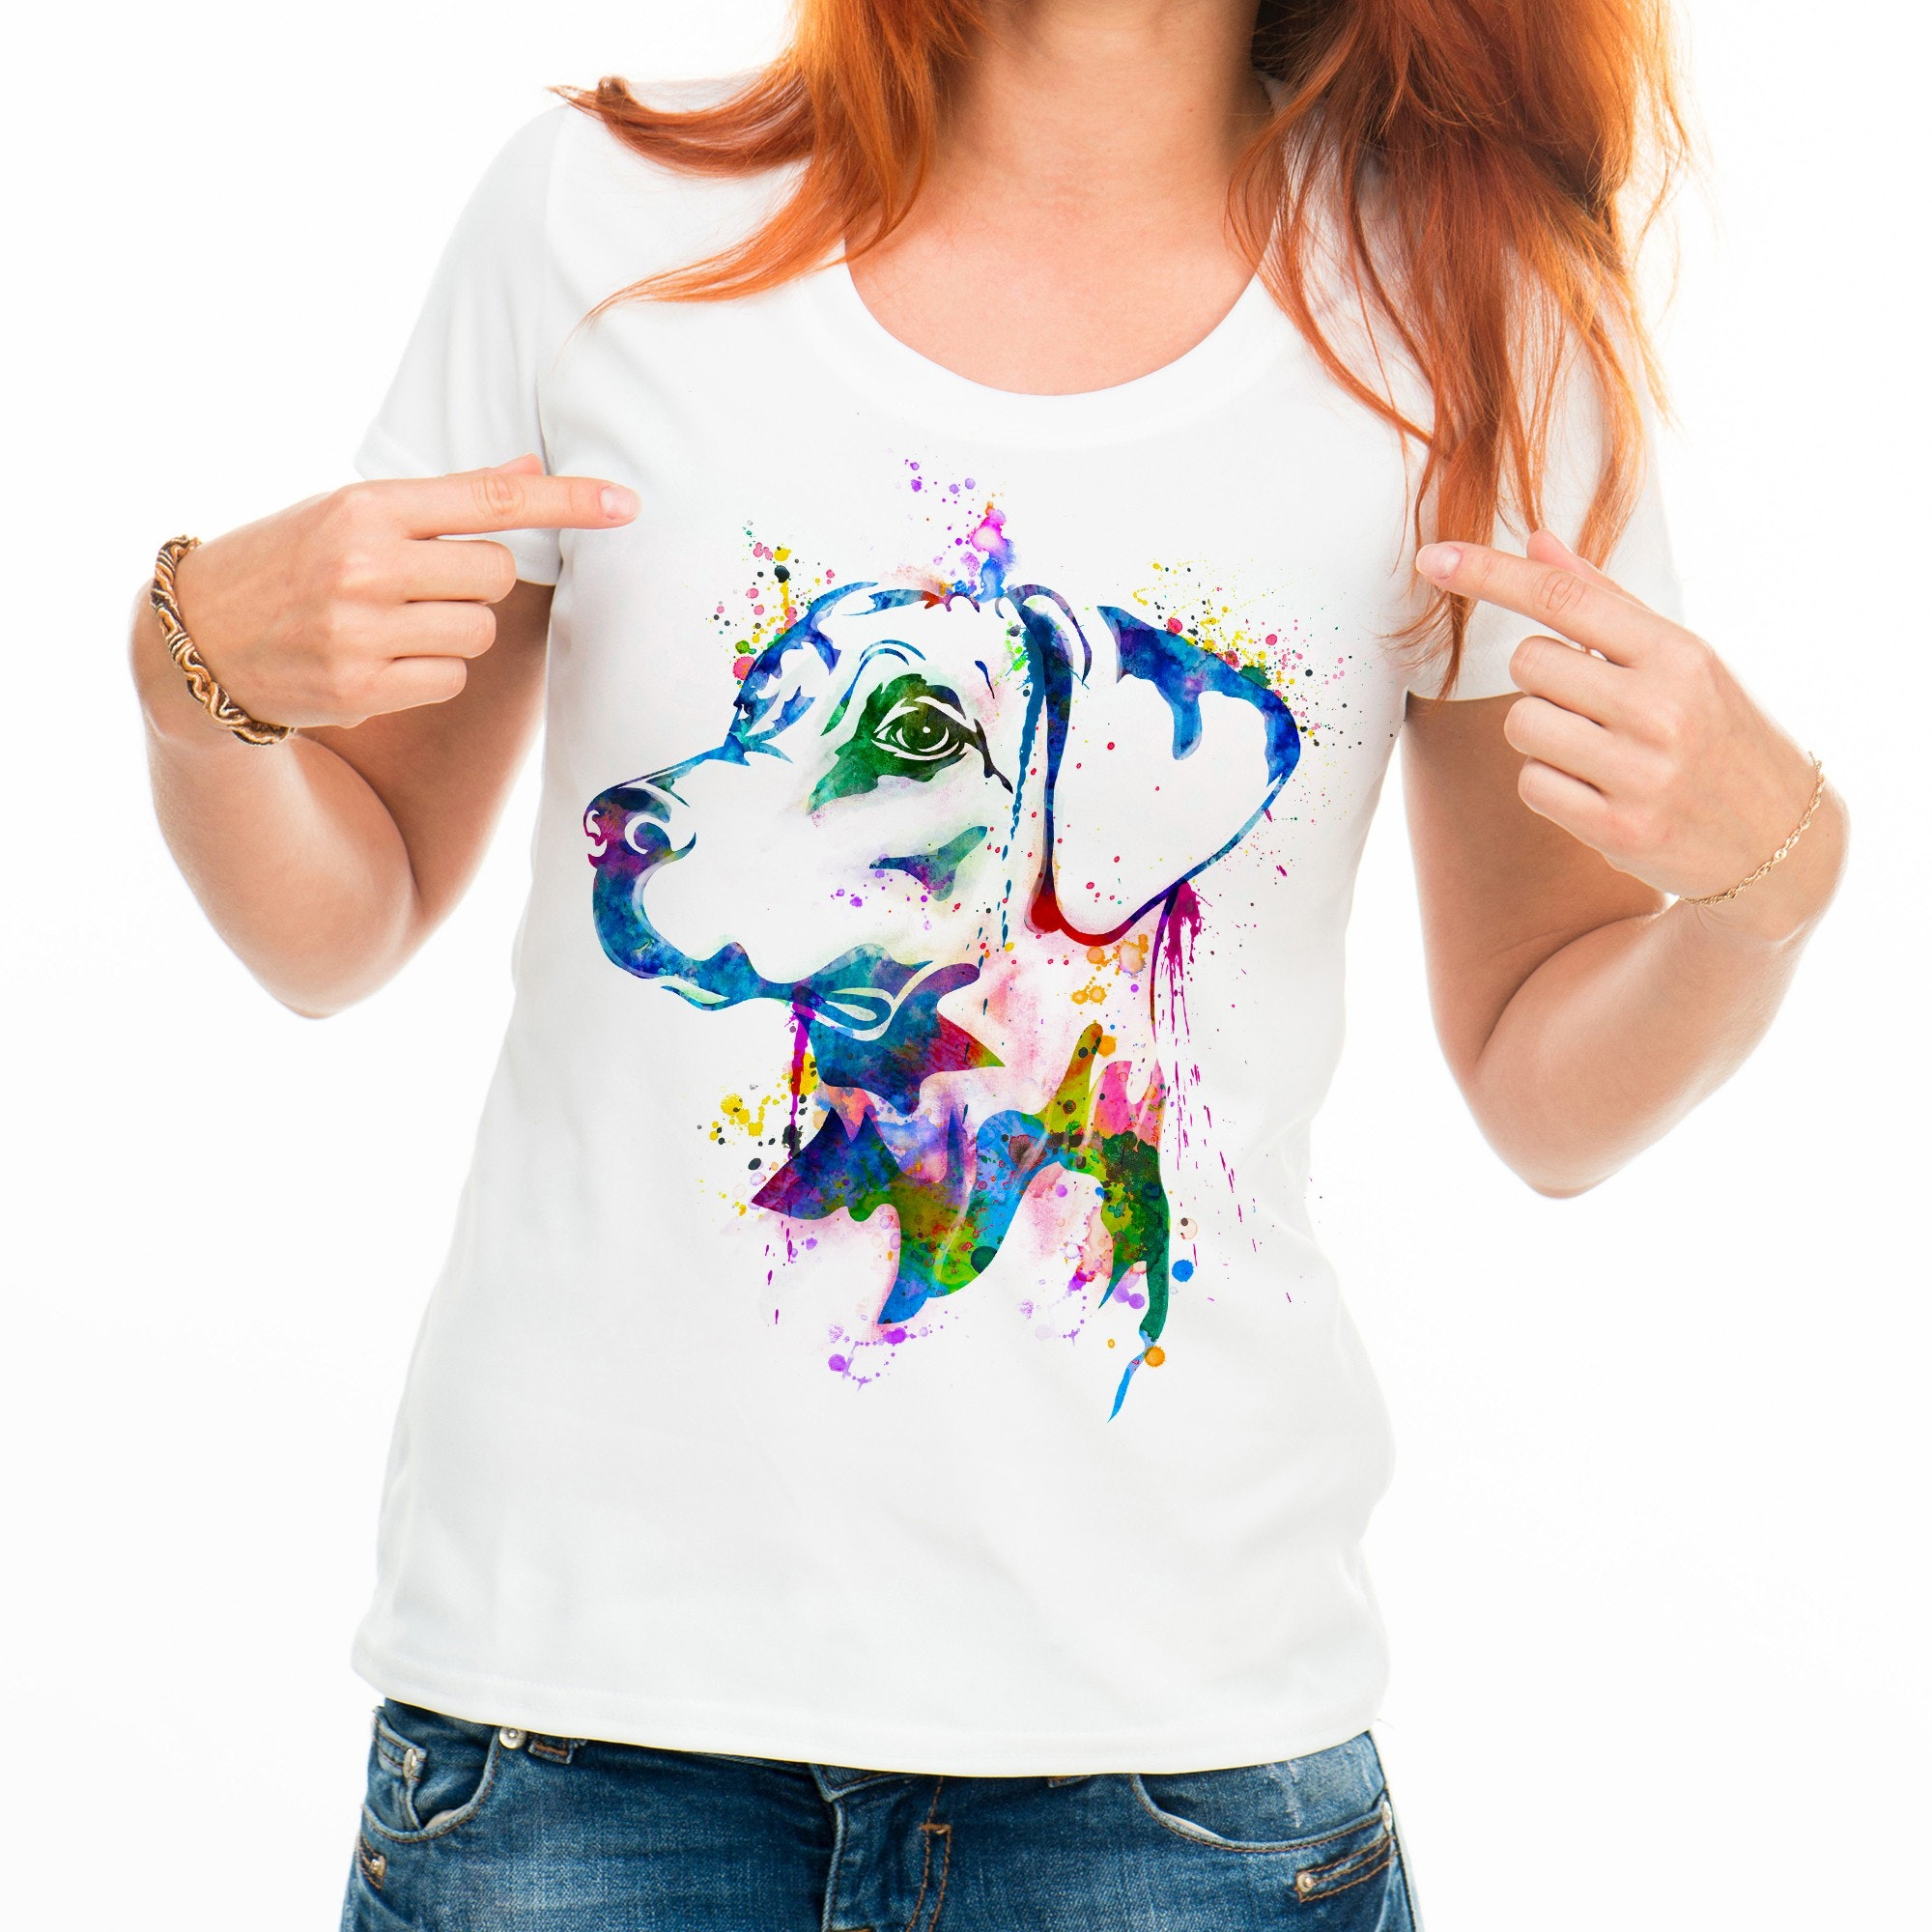 Watercolor dog t-shirt